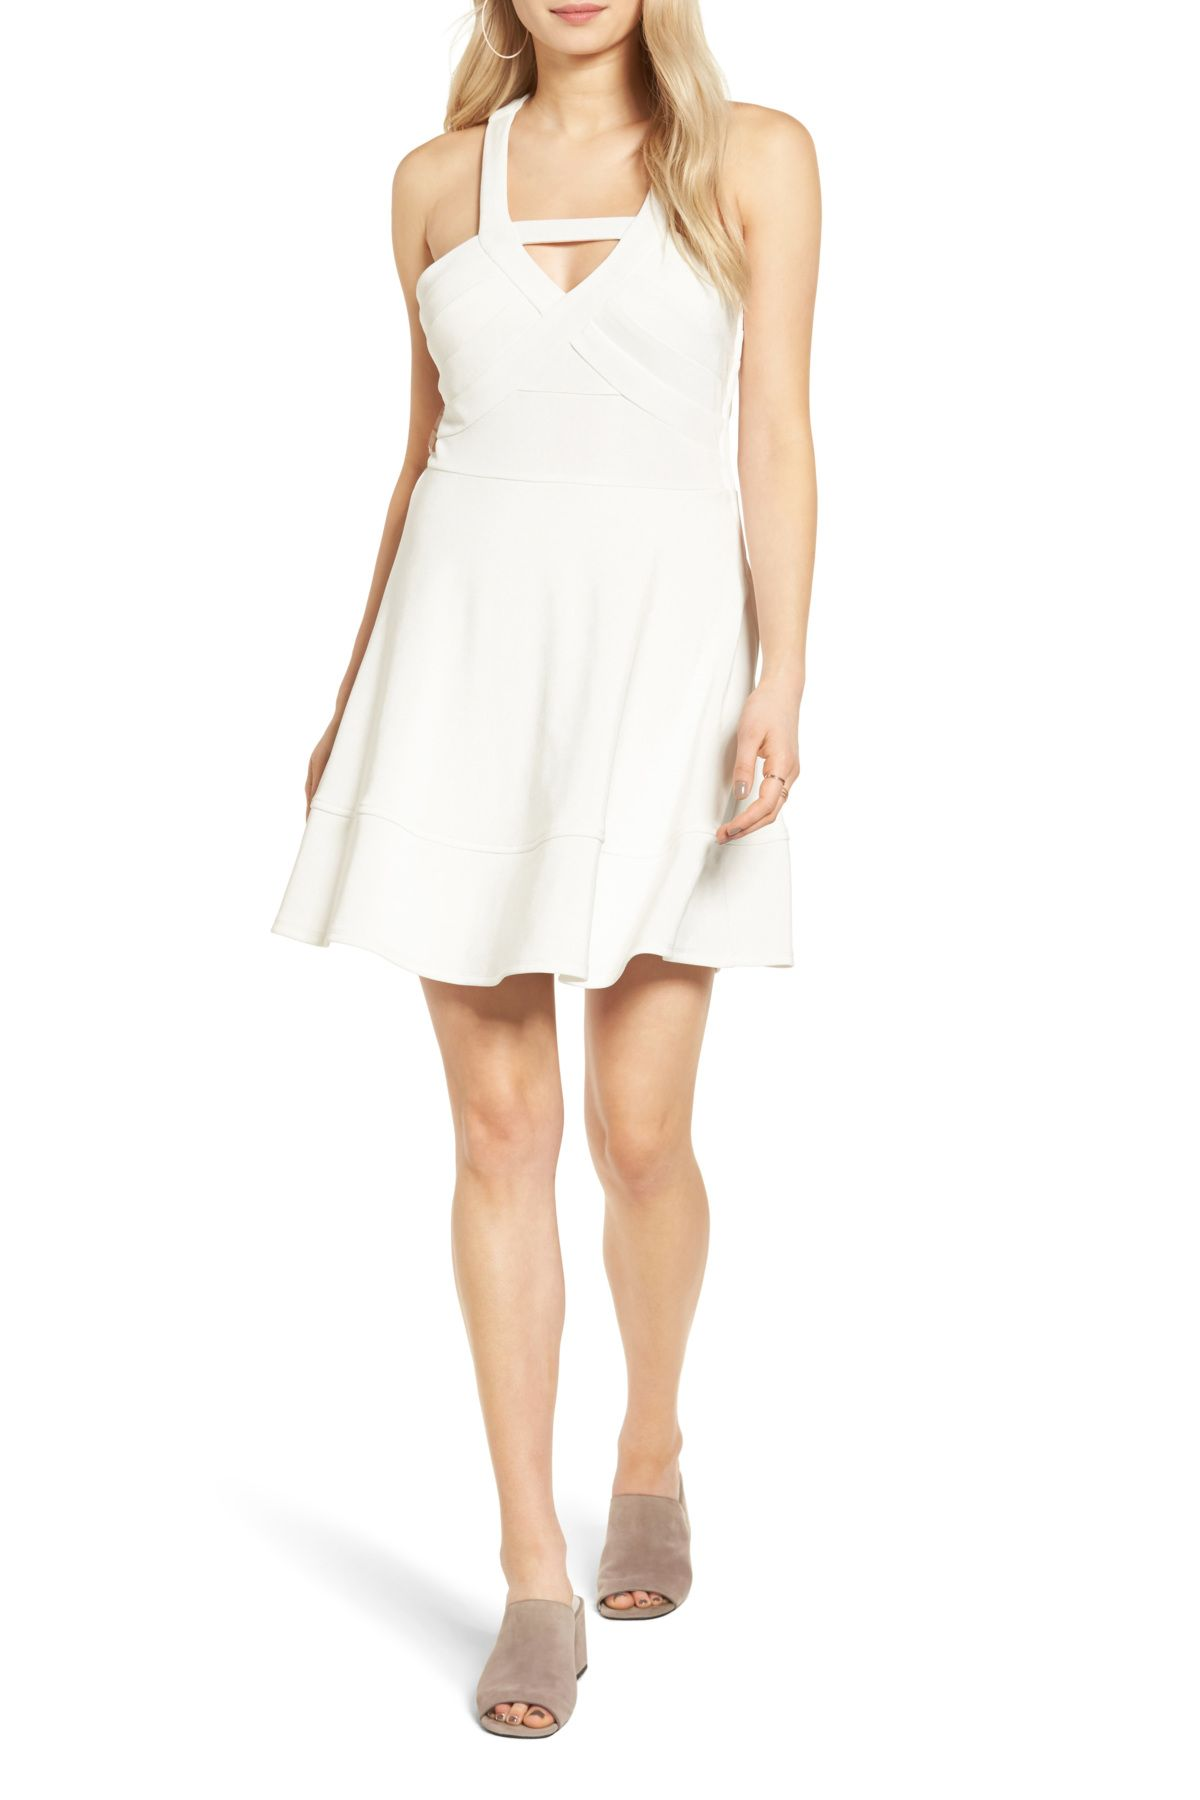 Love nickie lew strappy skater dress products